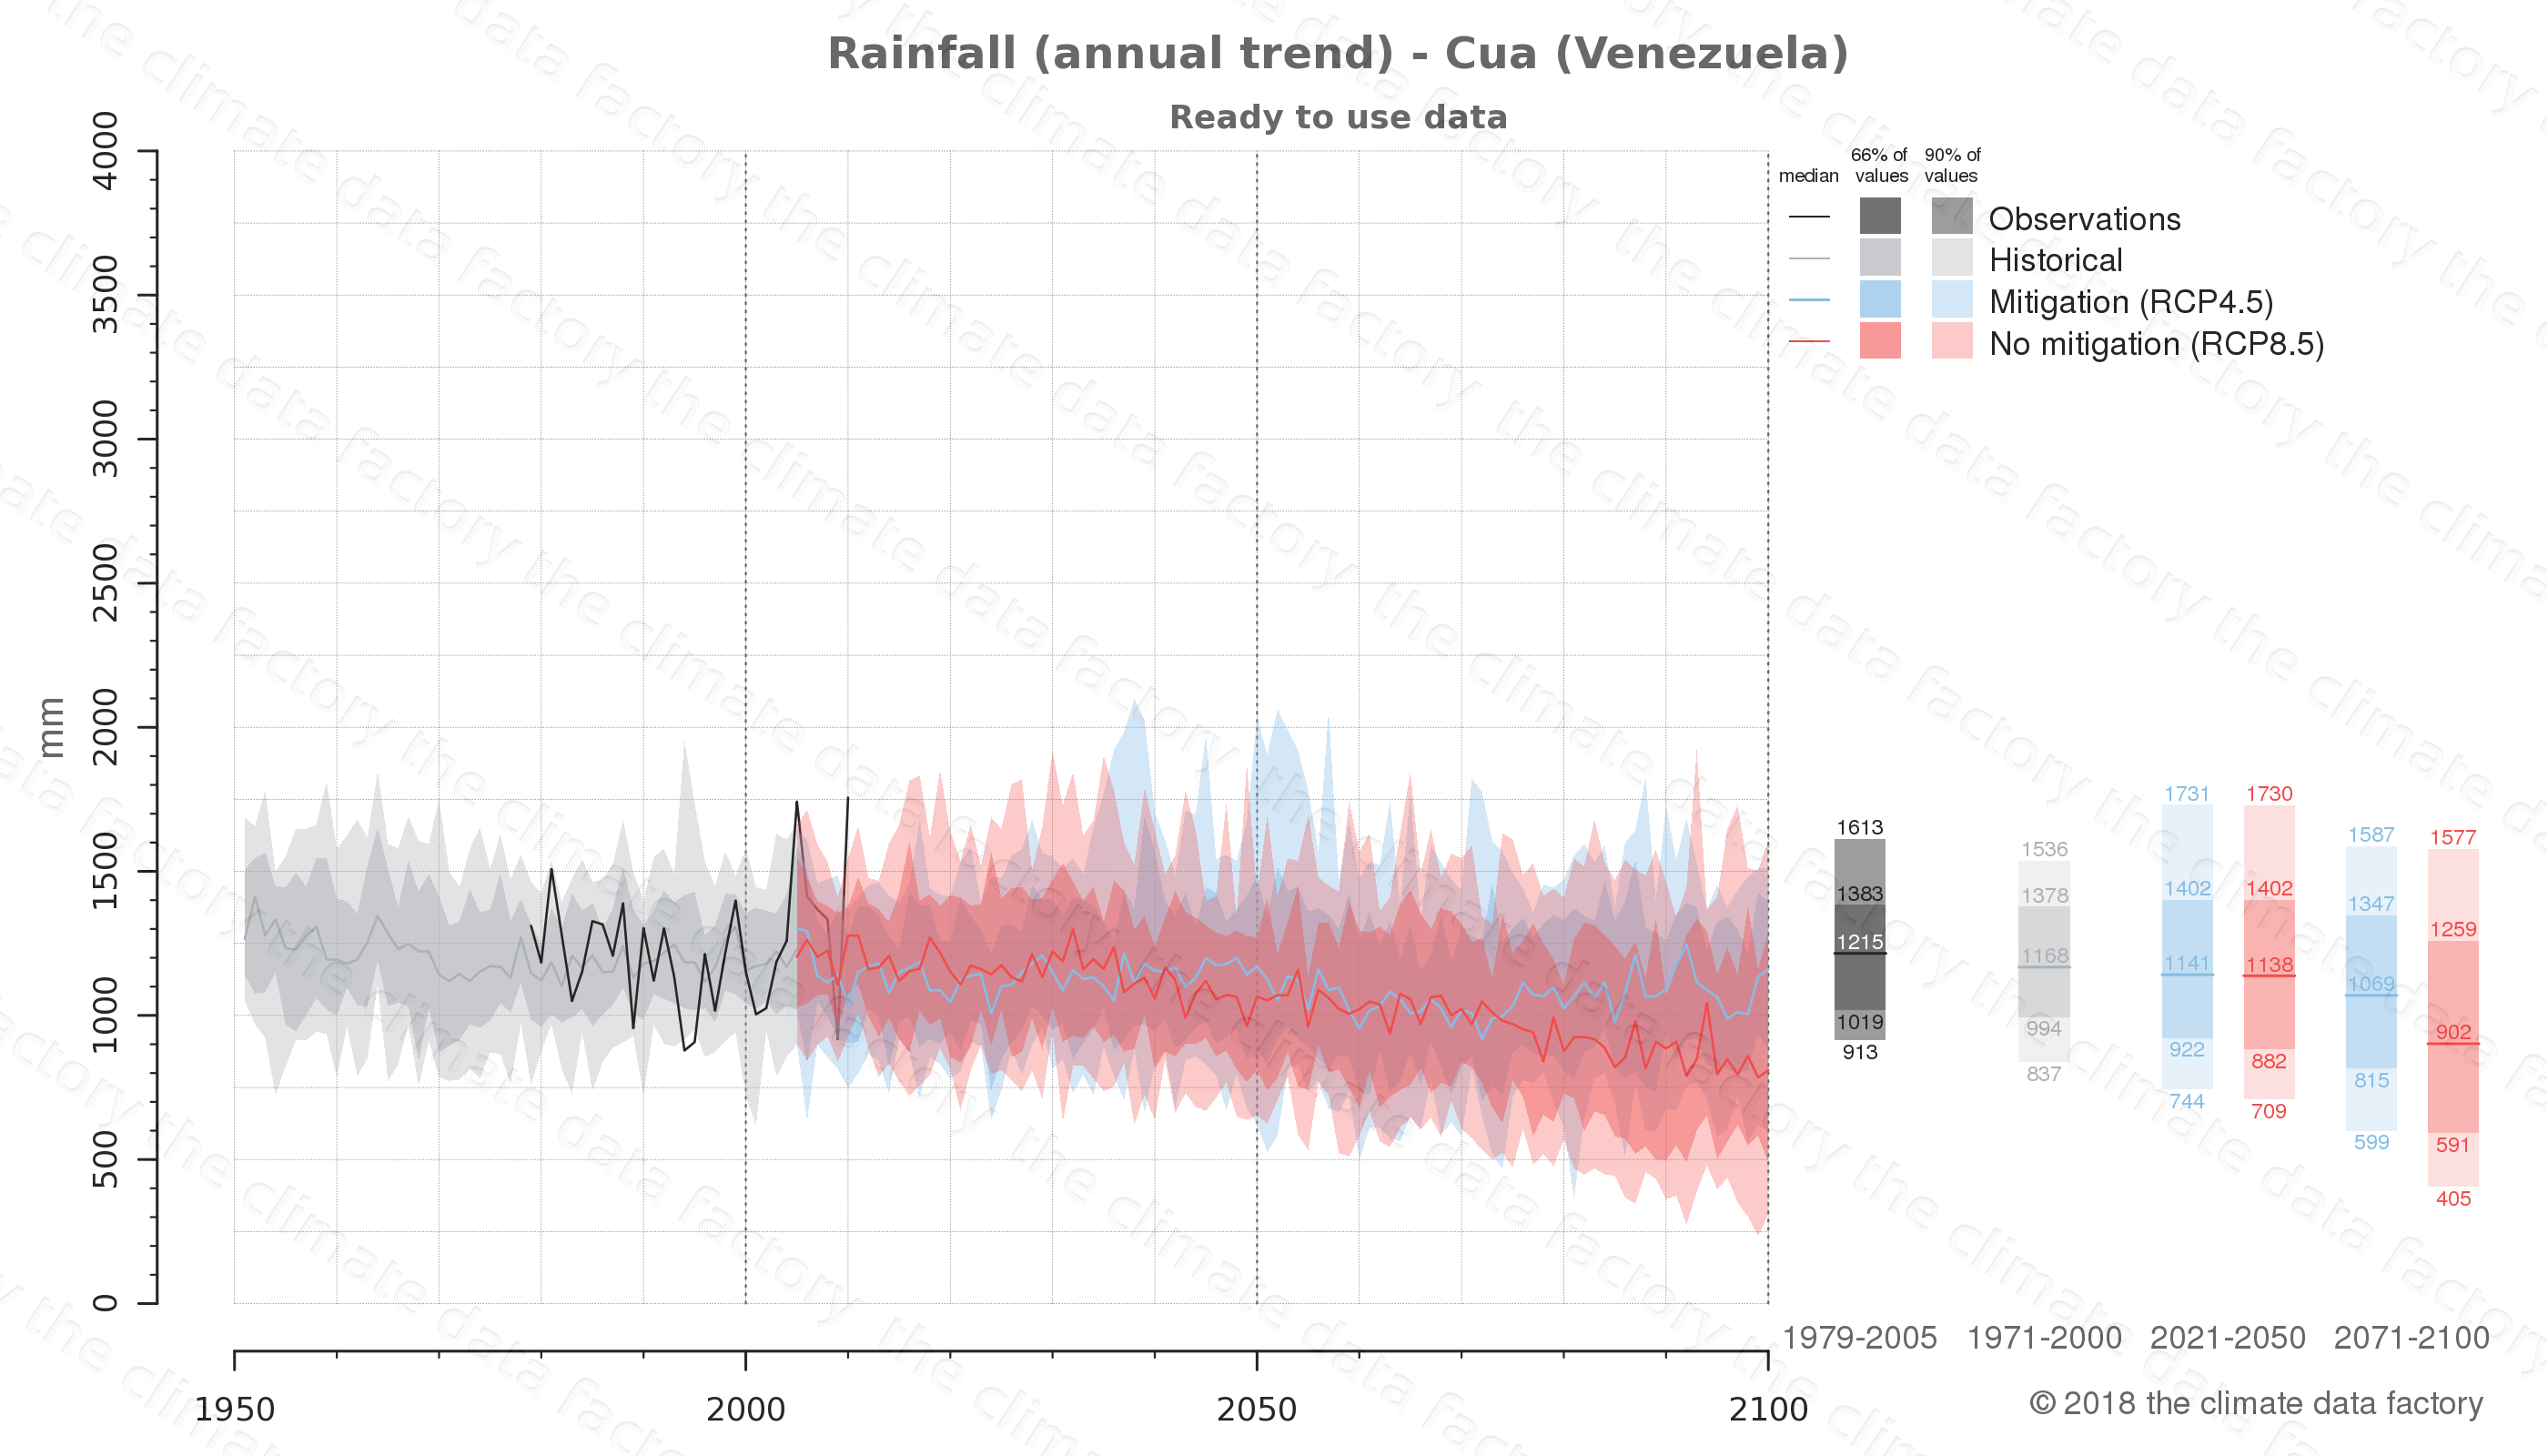 climate change data policy adaptation climate graph city data rainfall cua venezuela